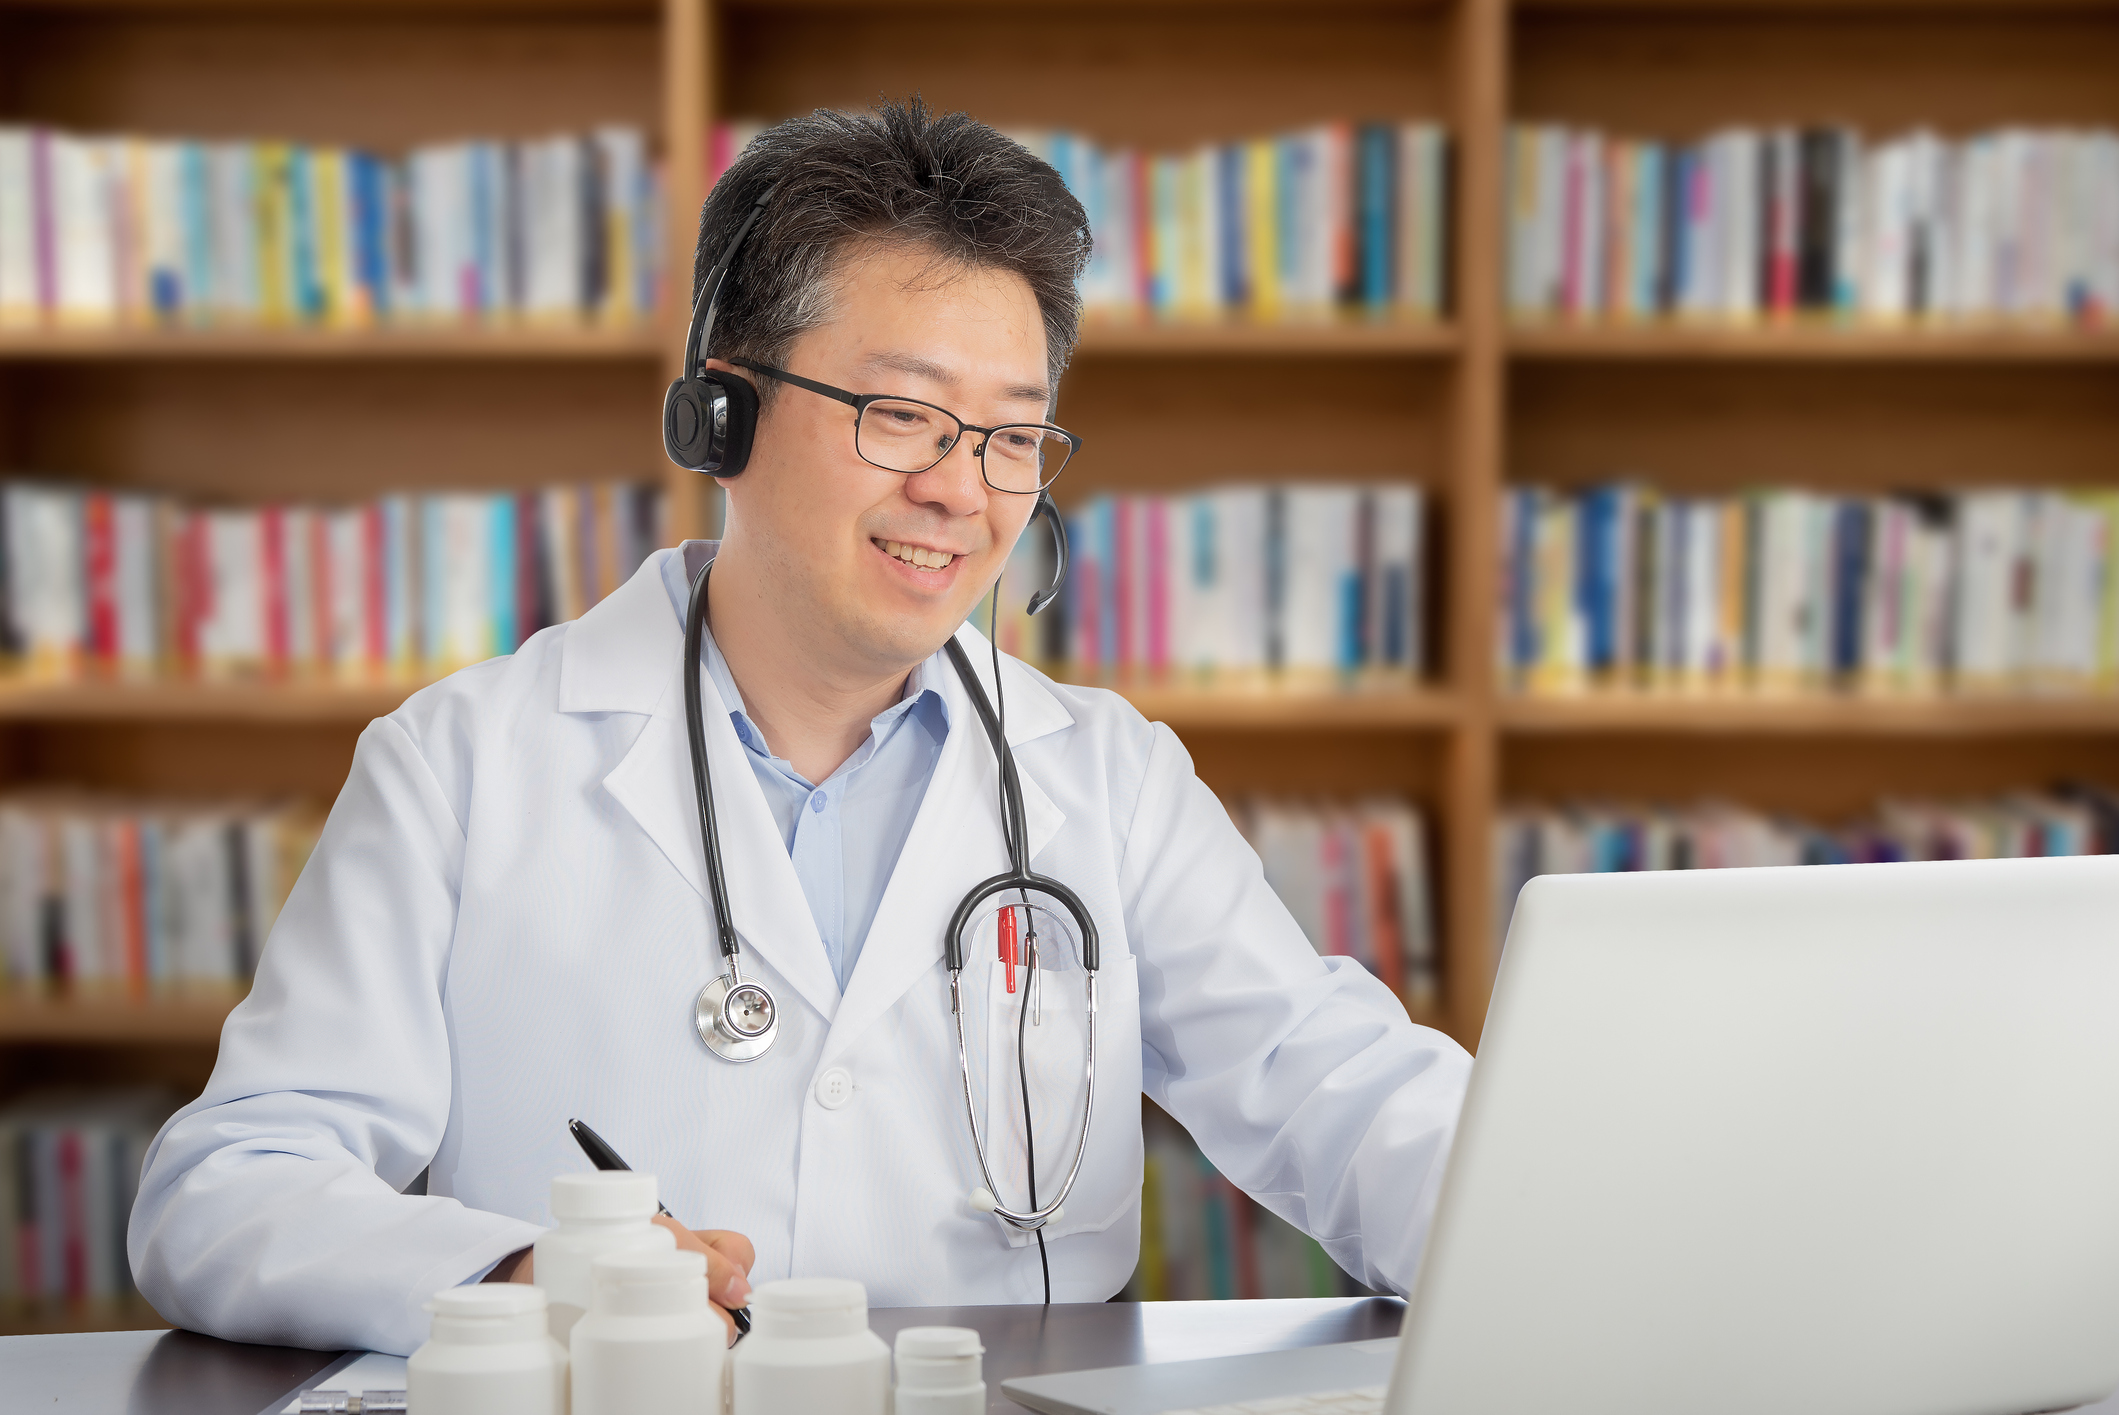 Medicare Updates You Need to Know About